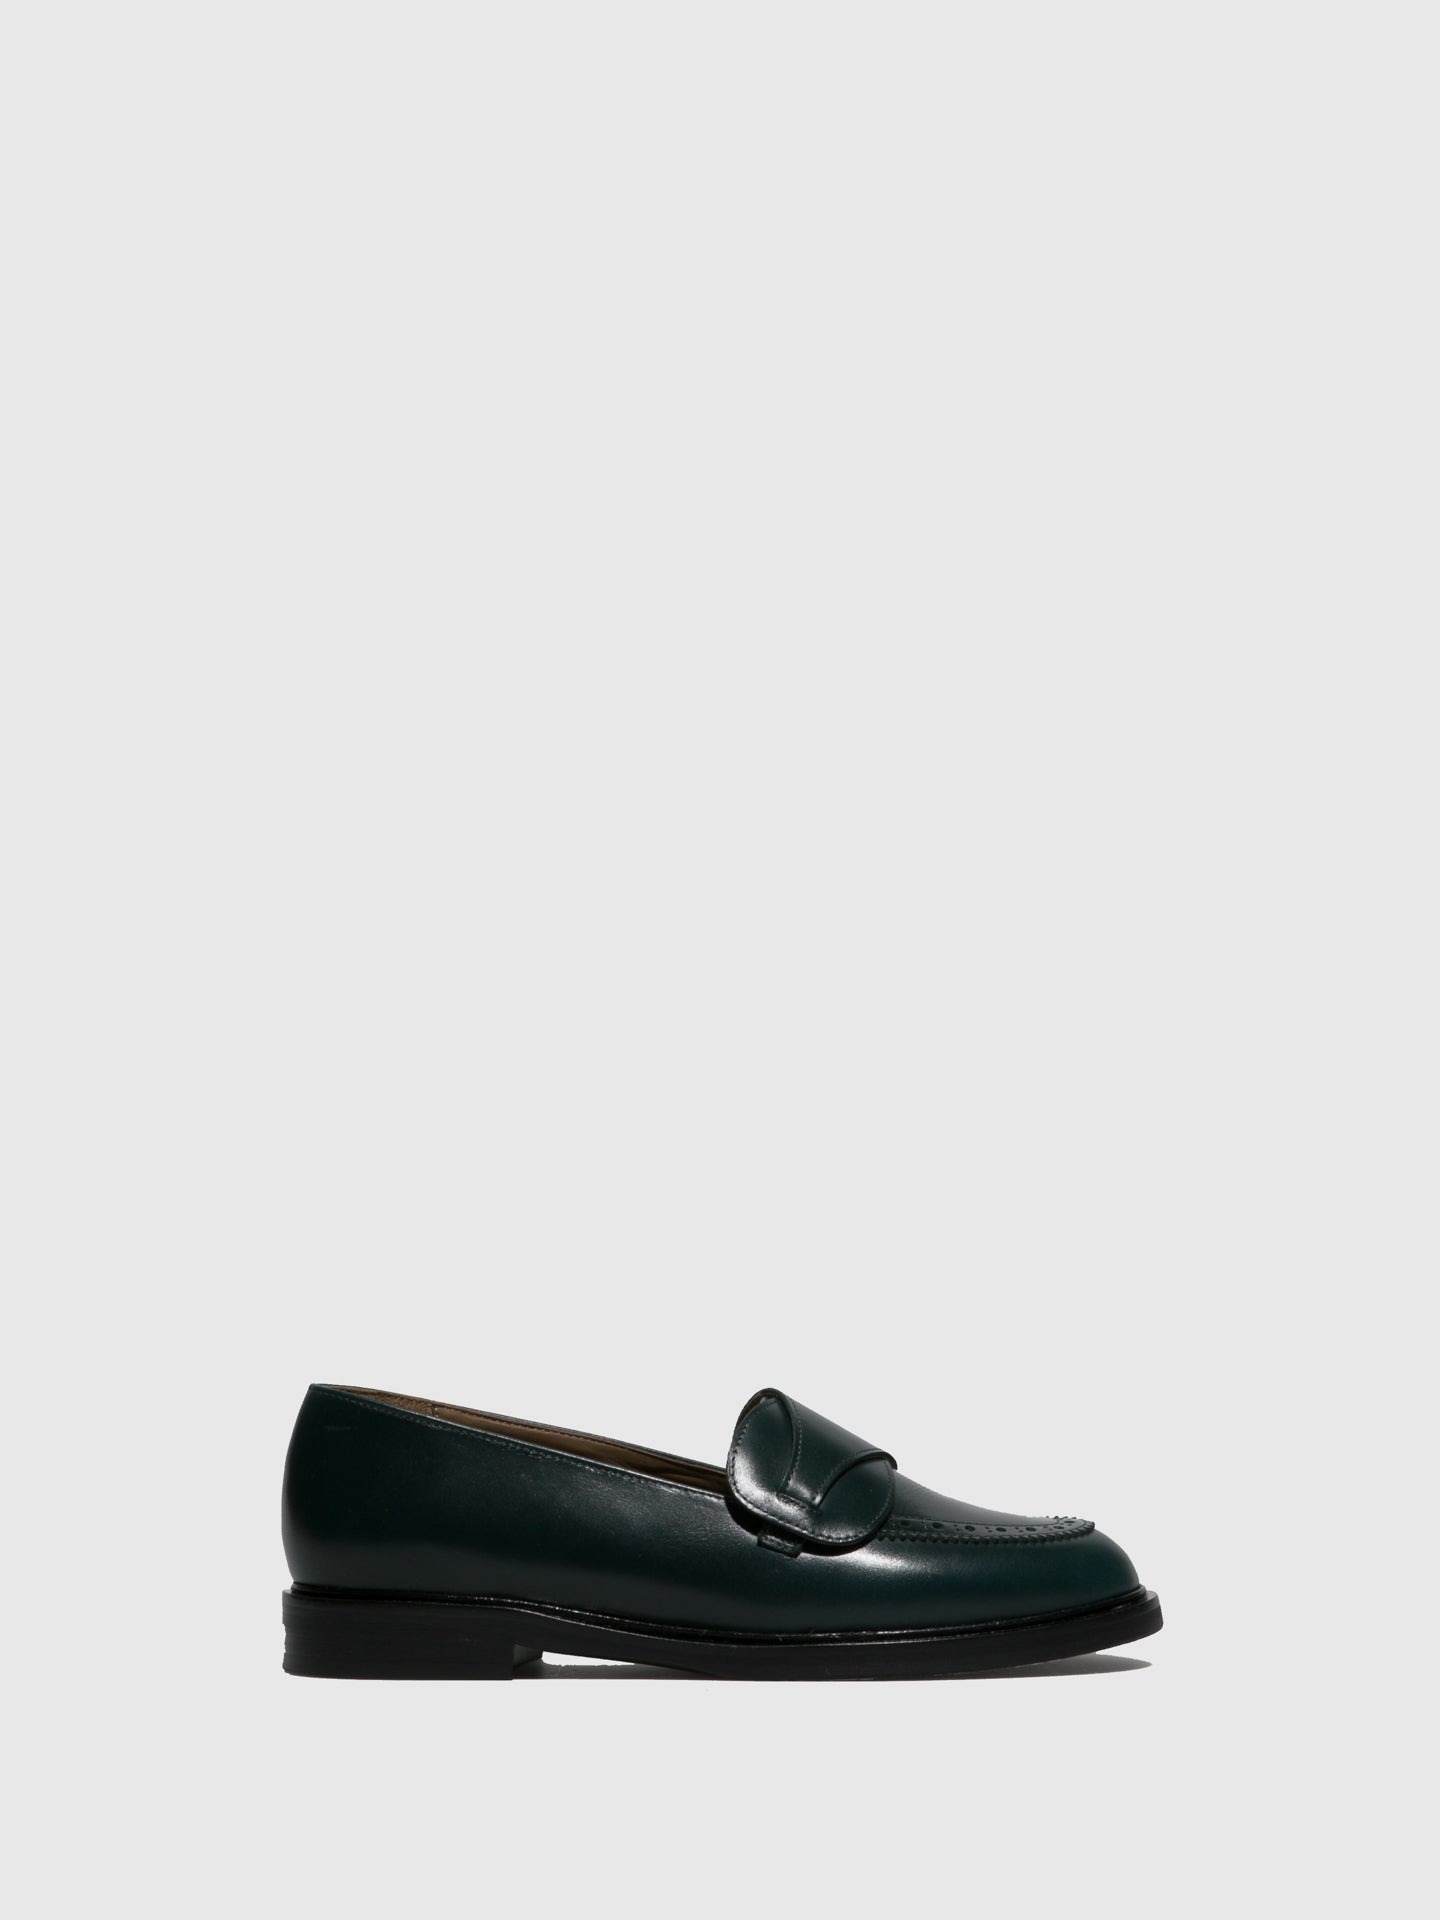 JJ Heitor DarkGreen Leather Loafers Shoes